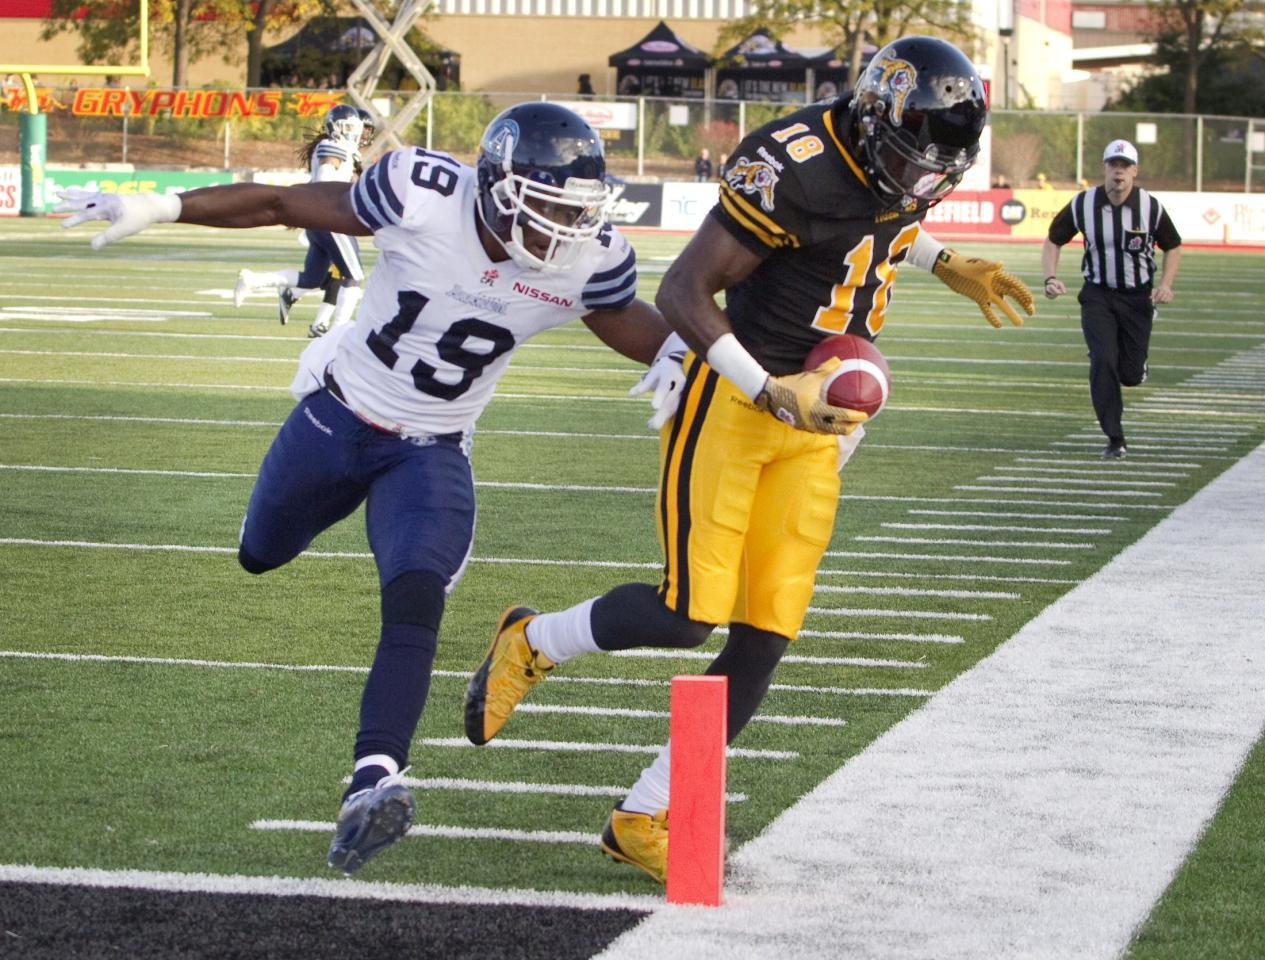 Hamilton Tiger-Cats' Dobson Collins (R) is pushed out of bounds just shy of the touchdown marker by Toronto Argonauts' Jalil Carter in the first half of their CFL football game in Guelph October 14, 2013. REUTERS/Fred Thornhill (CANADA - Tags: SPORT FOOTBALL)